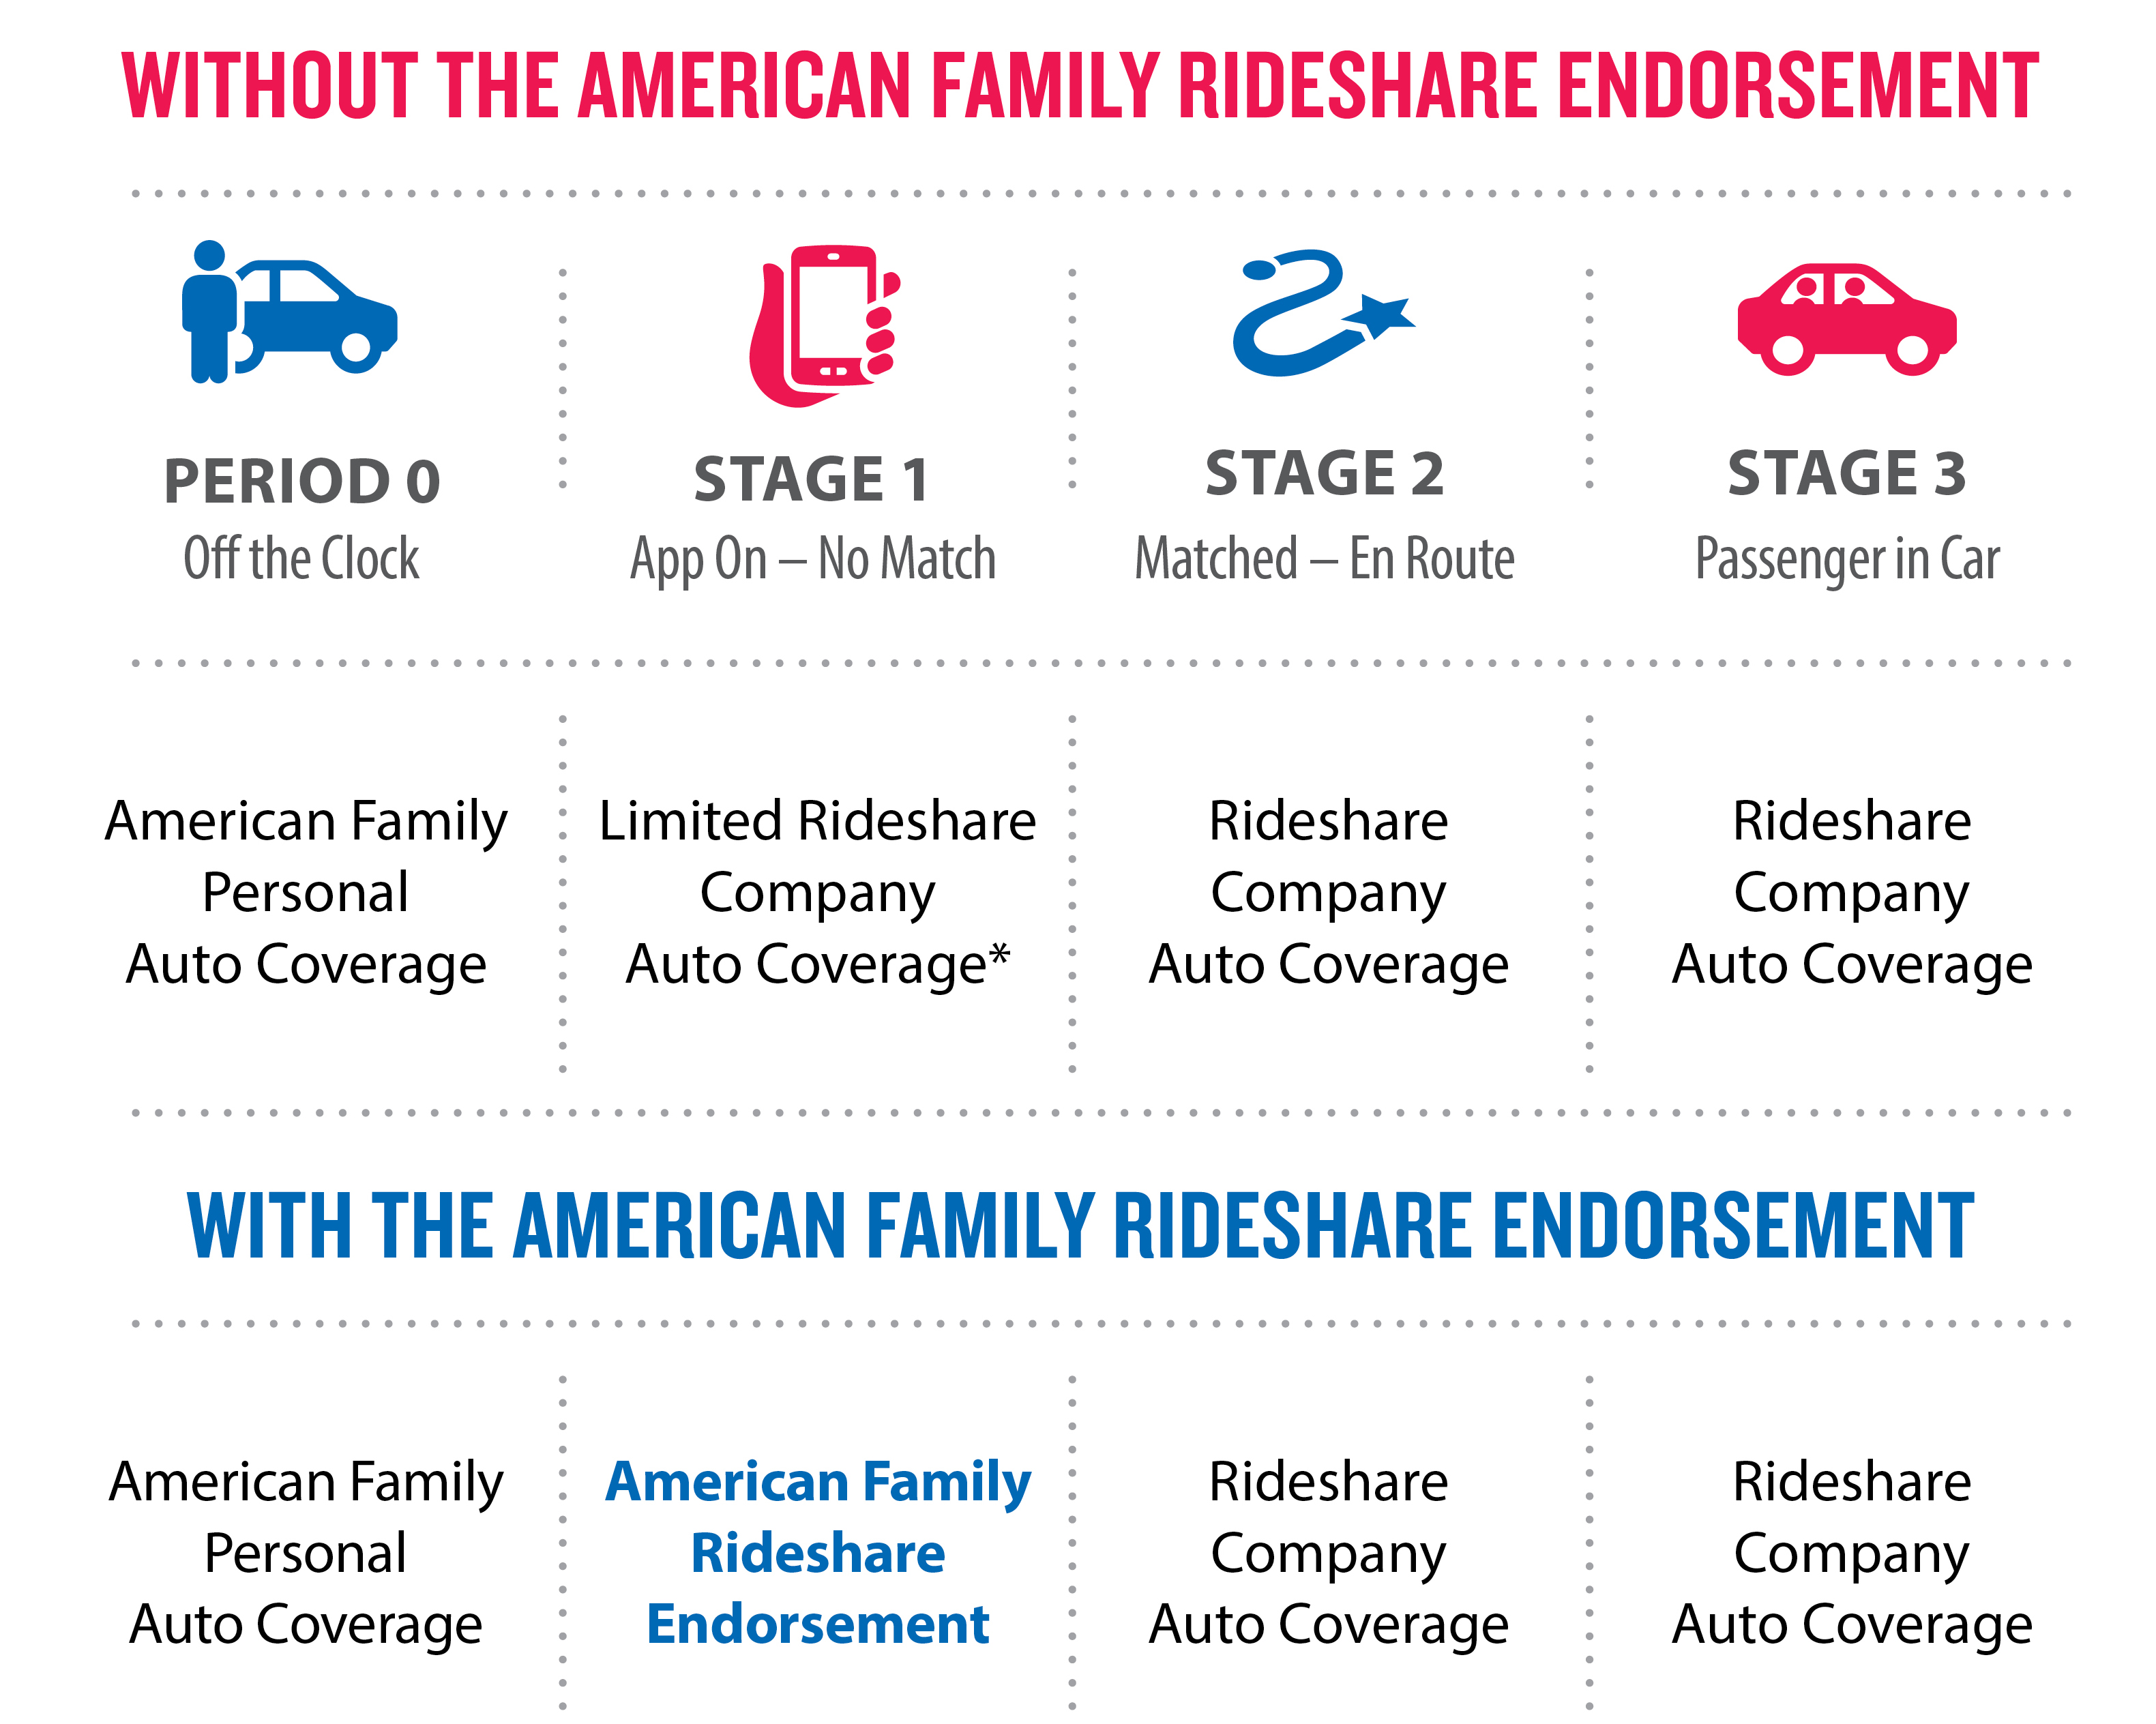 American Family Rideshare Endorsement